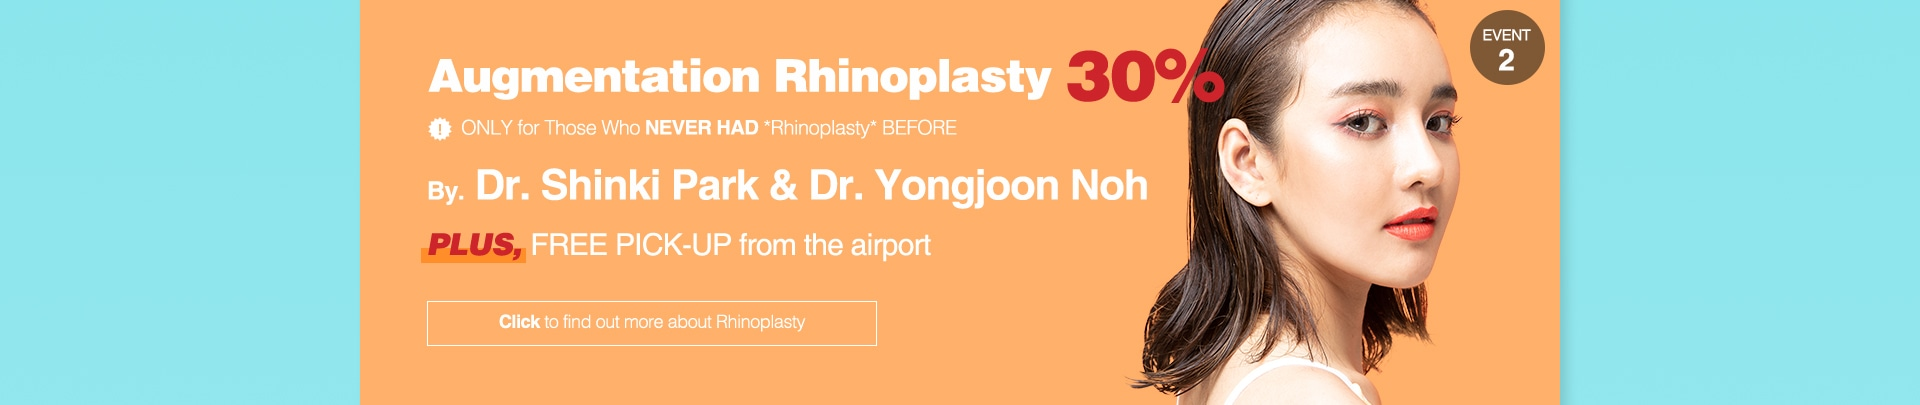 EVENT2. Augmentation Rhinoplasty 30% By. Dr.Shinki Park & Dr.Yongjoon Noh